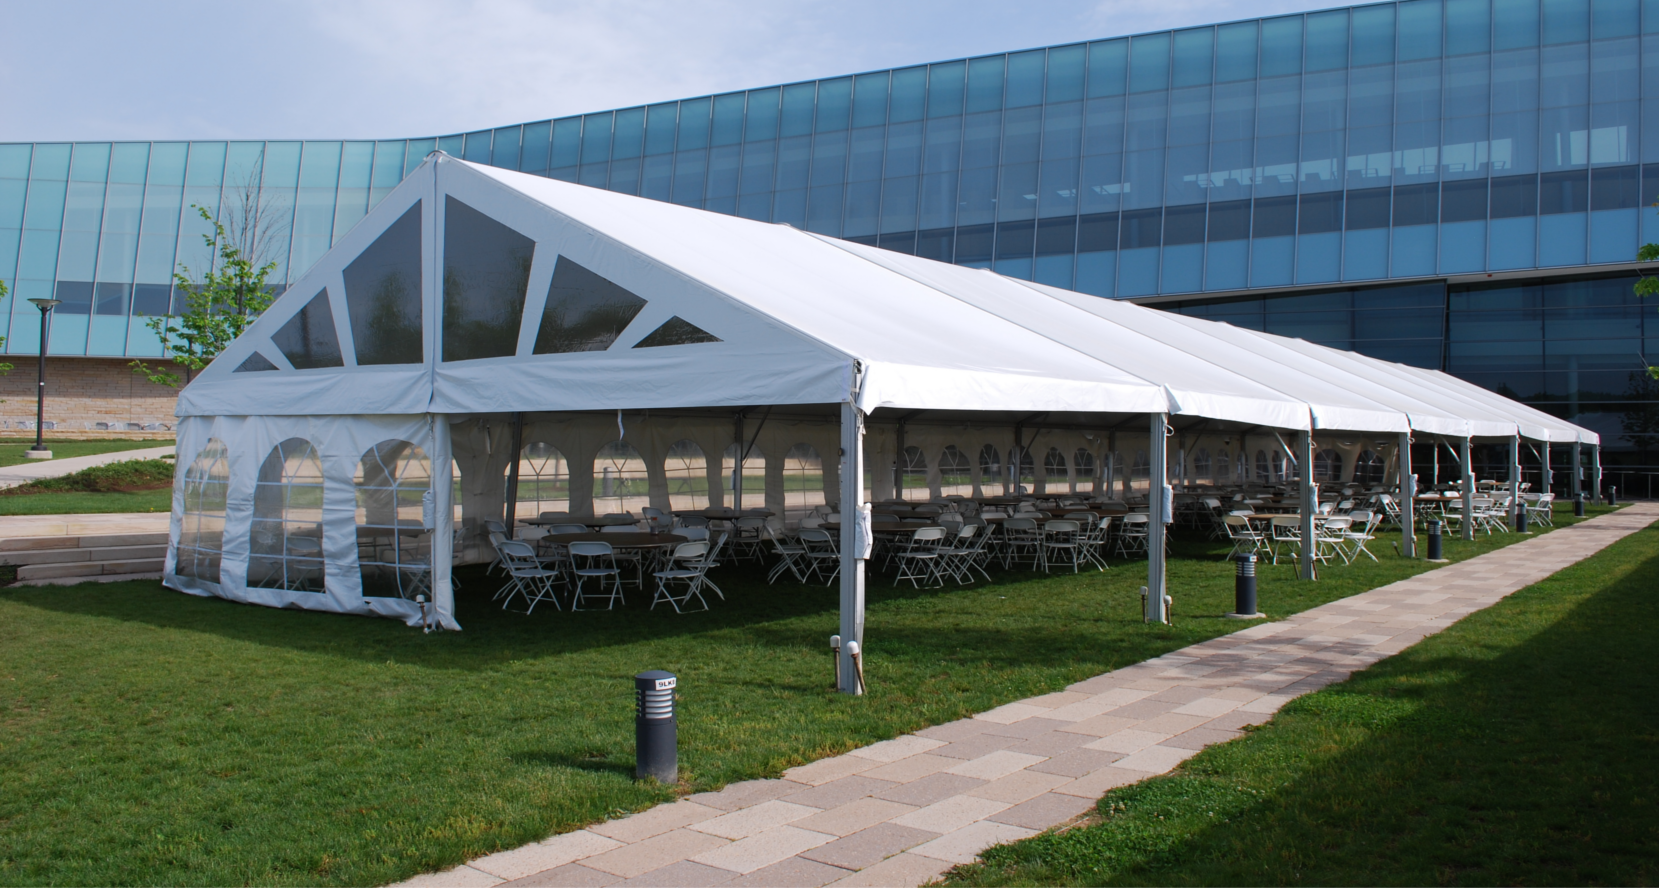 The Frame Tents